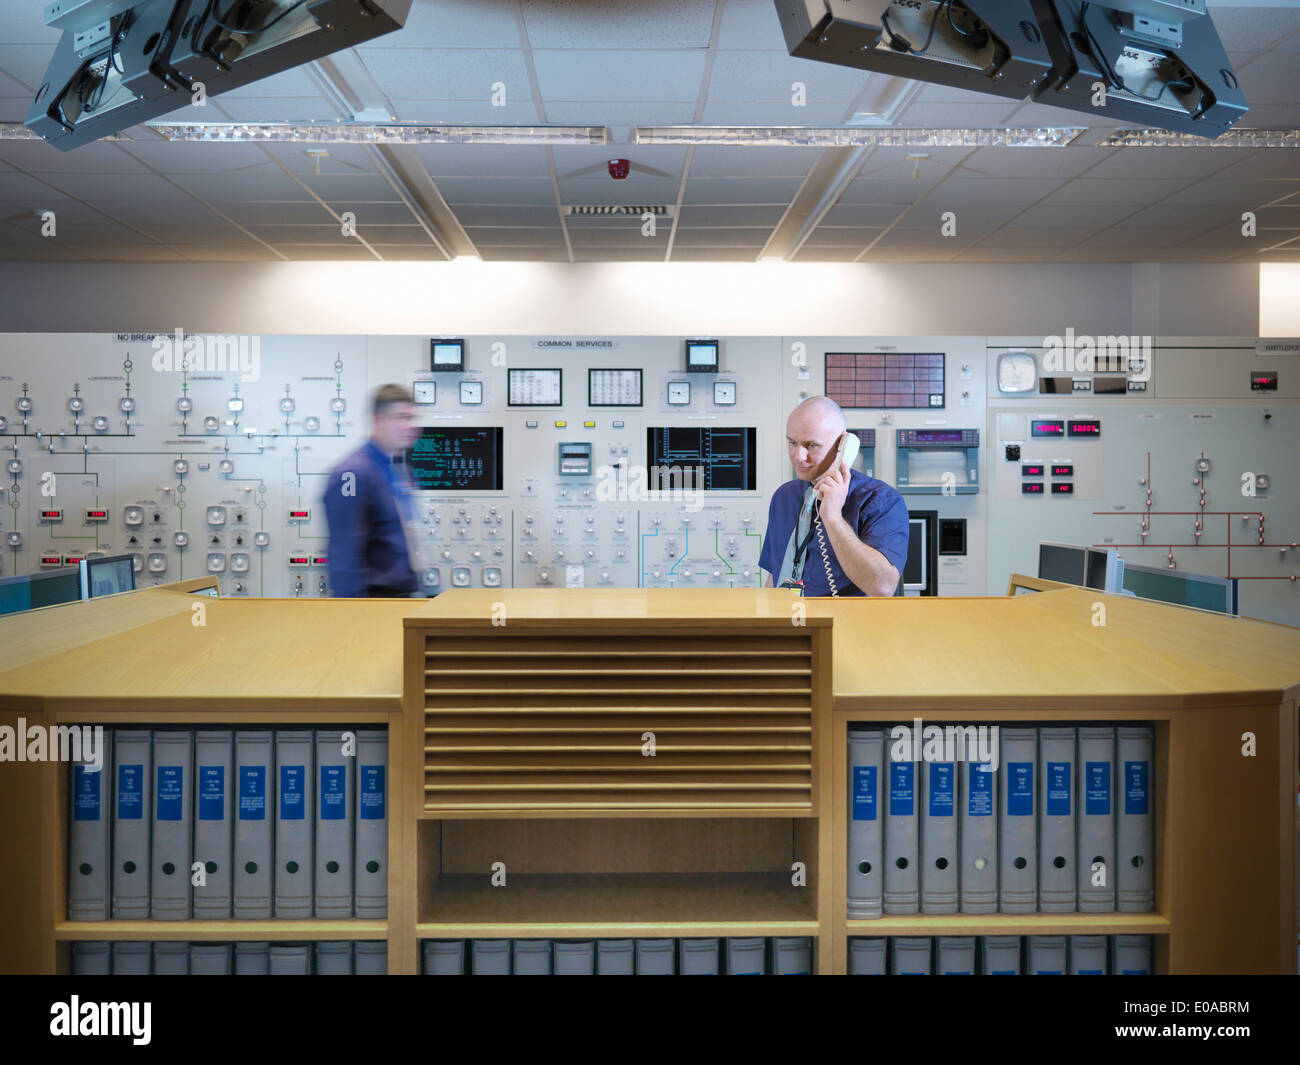 Engineers in nuclear power station control room simulator - Stock Image